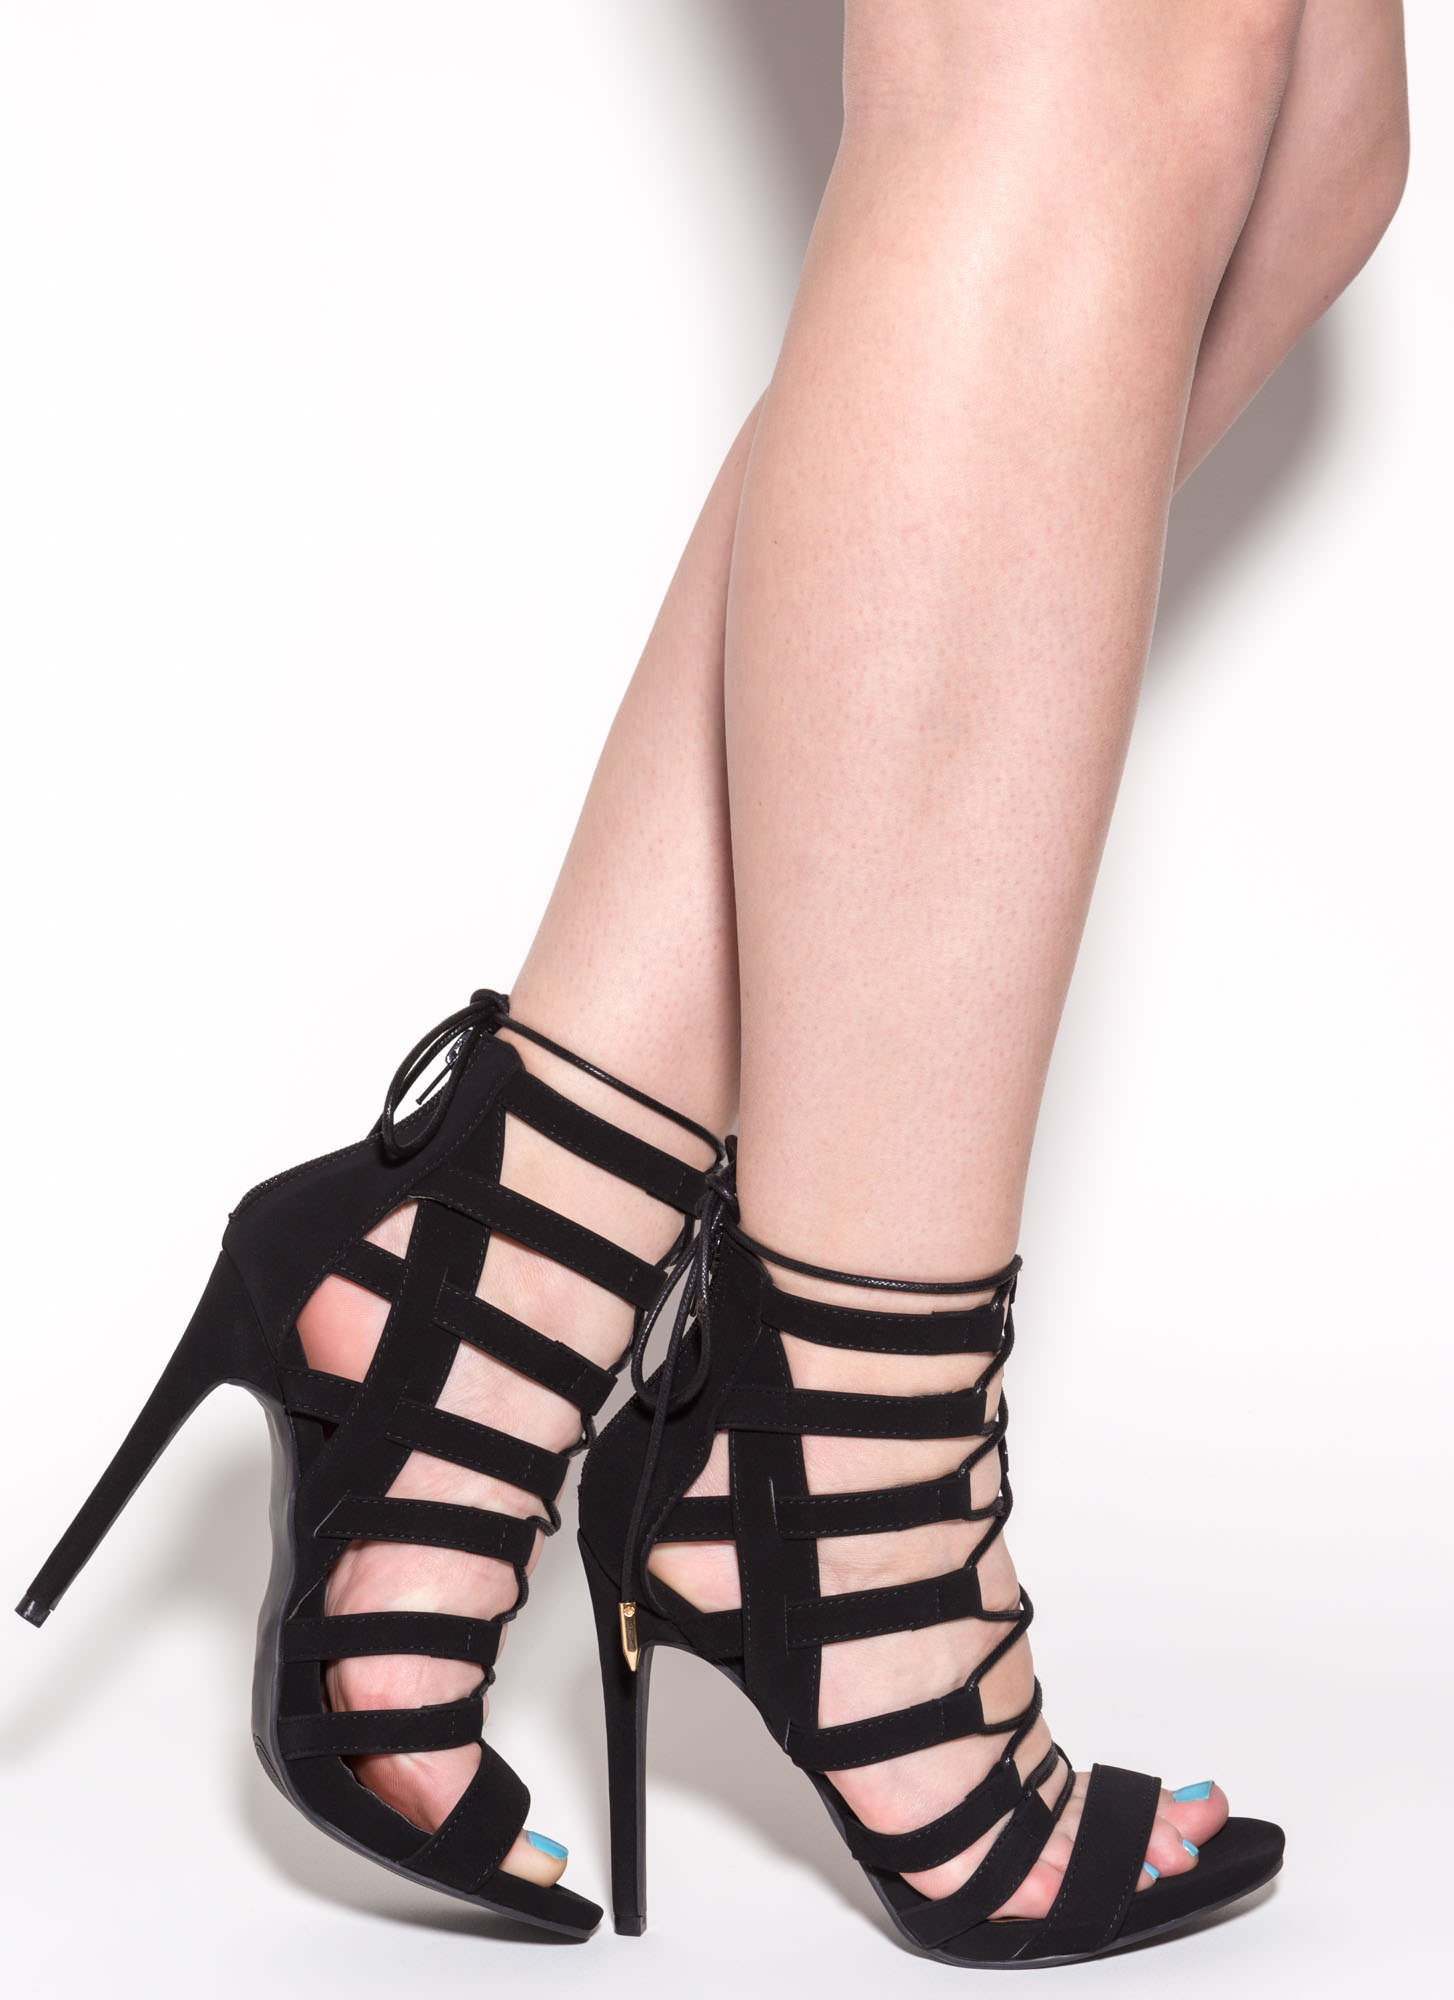 In A Cage Lace-Up Heels